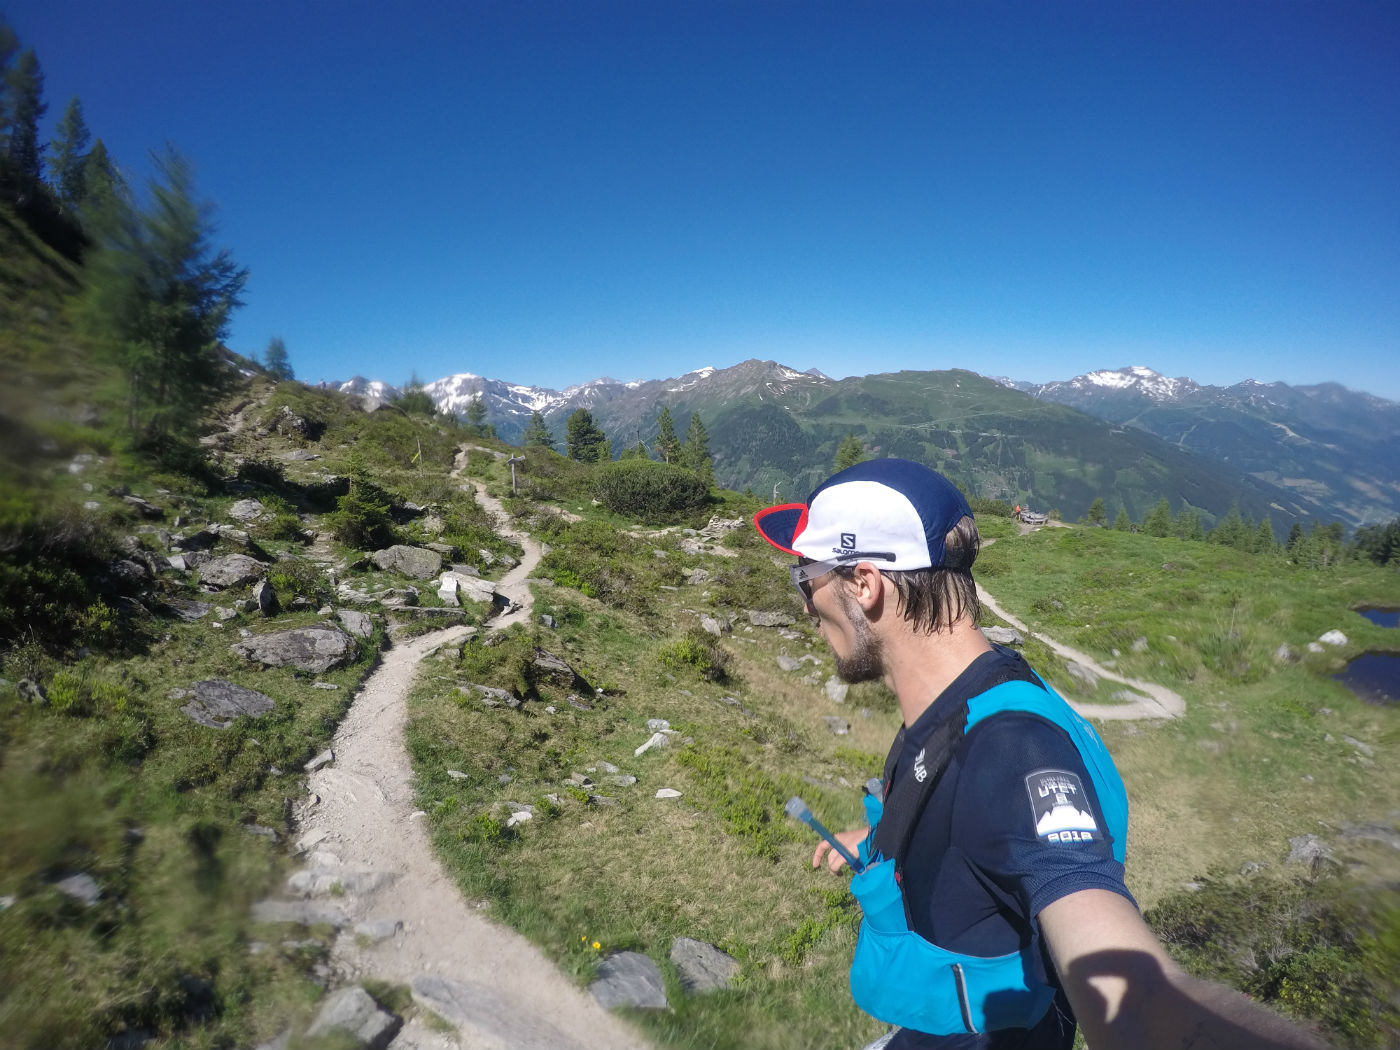 Cruising along the stunning trails at Graukogel overlooking the valley and the Zitterauer Tisch.